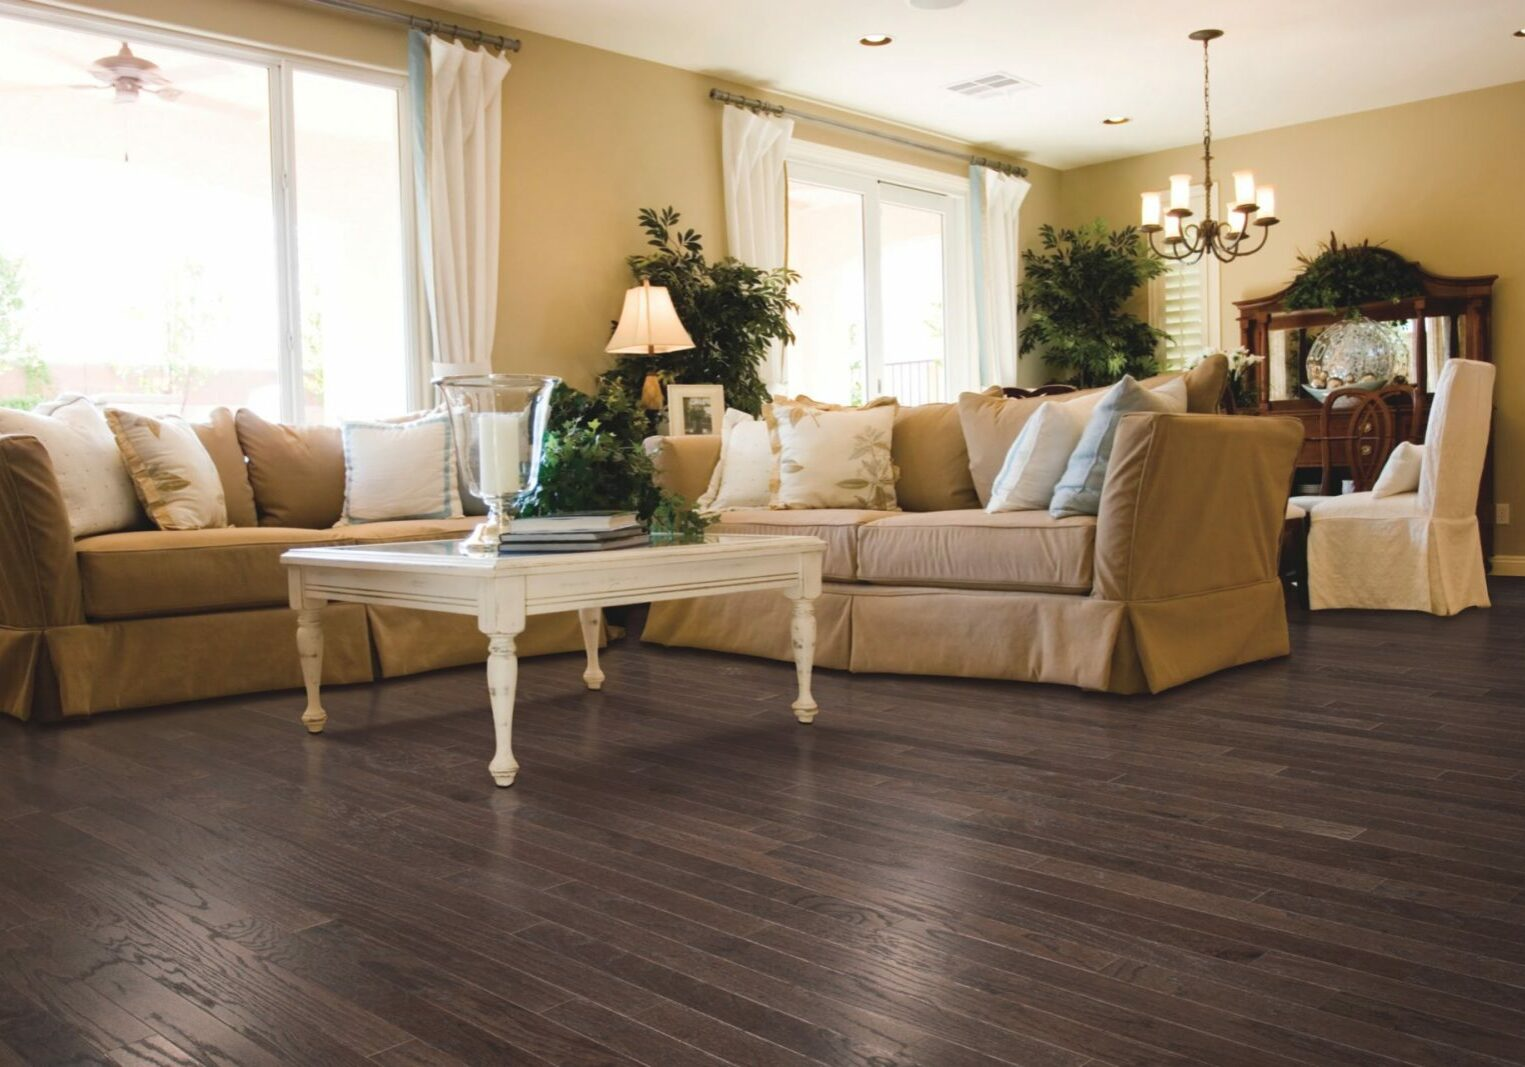 Karastan Flooring Of Living Room | IQ Floors